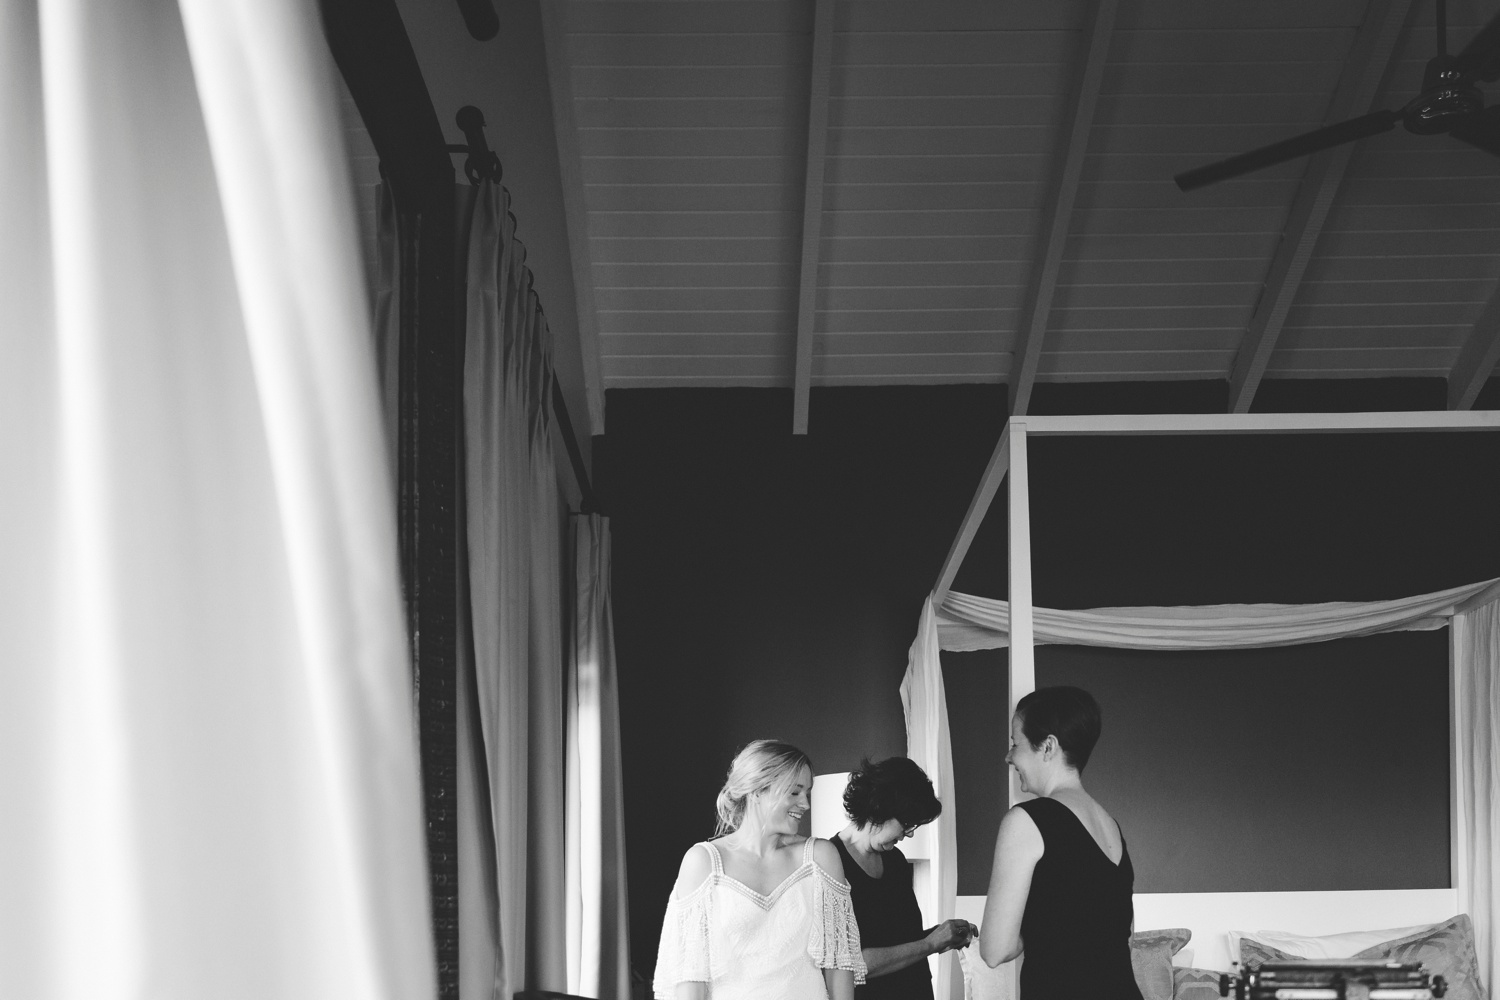 charlie_ray_photography_runaway_romance_elopement_emily_moon_plett_simple_boho_wedding_south_africa_bohemium_0026.jpg